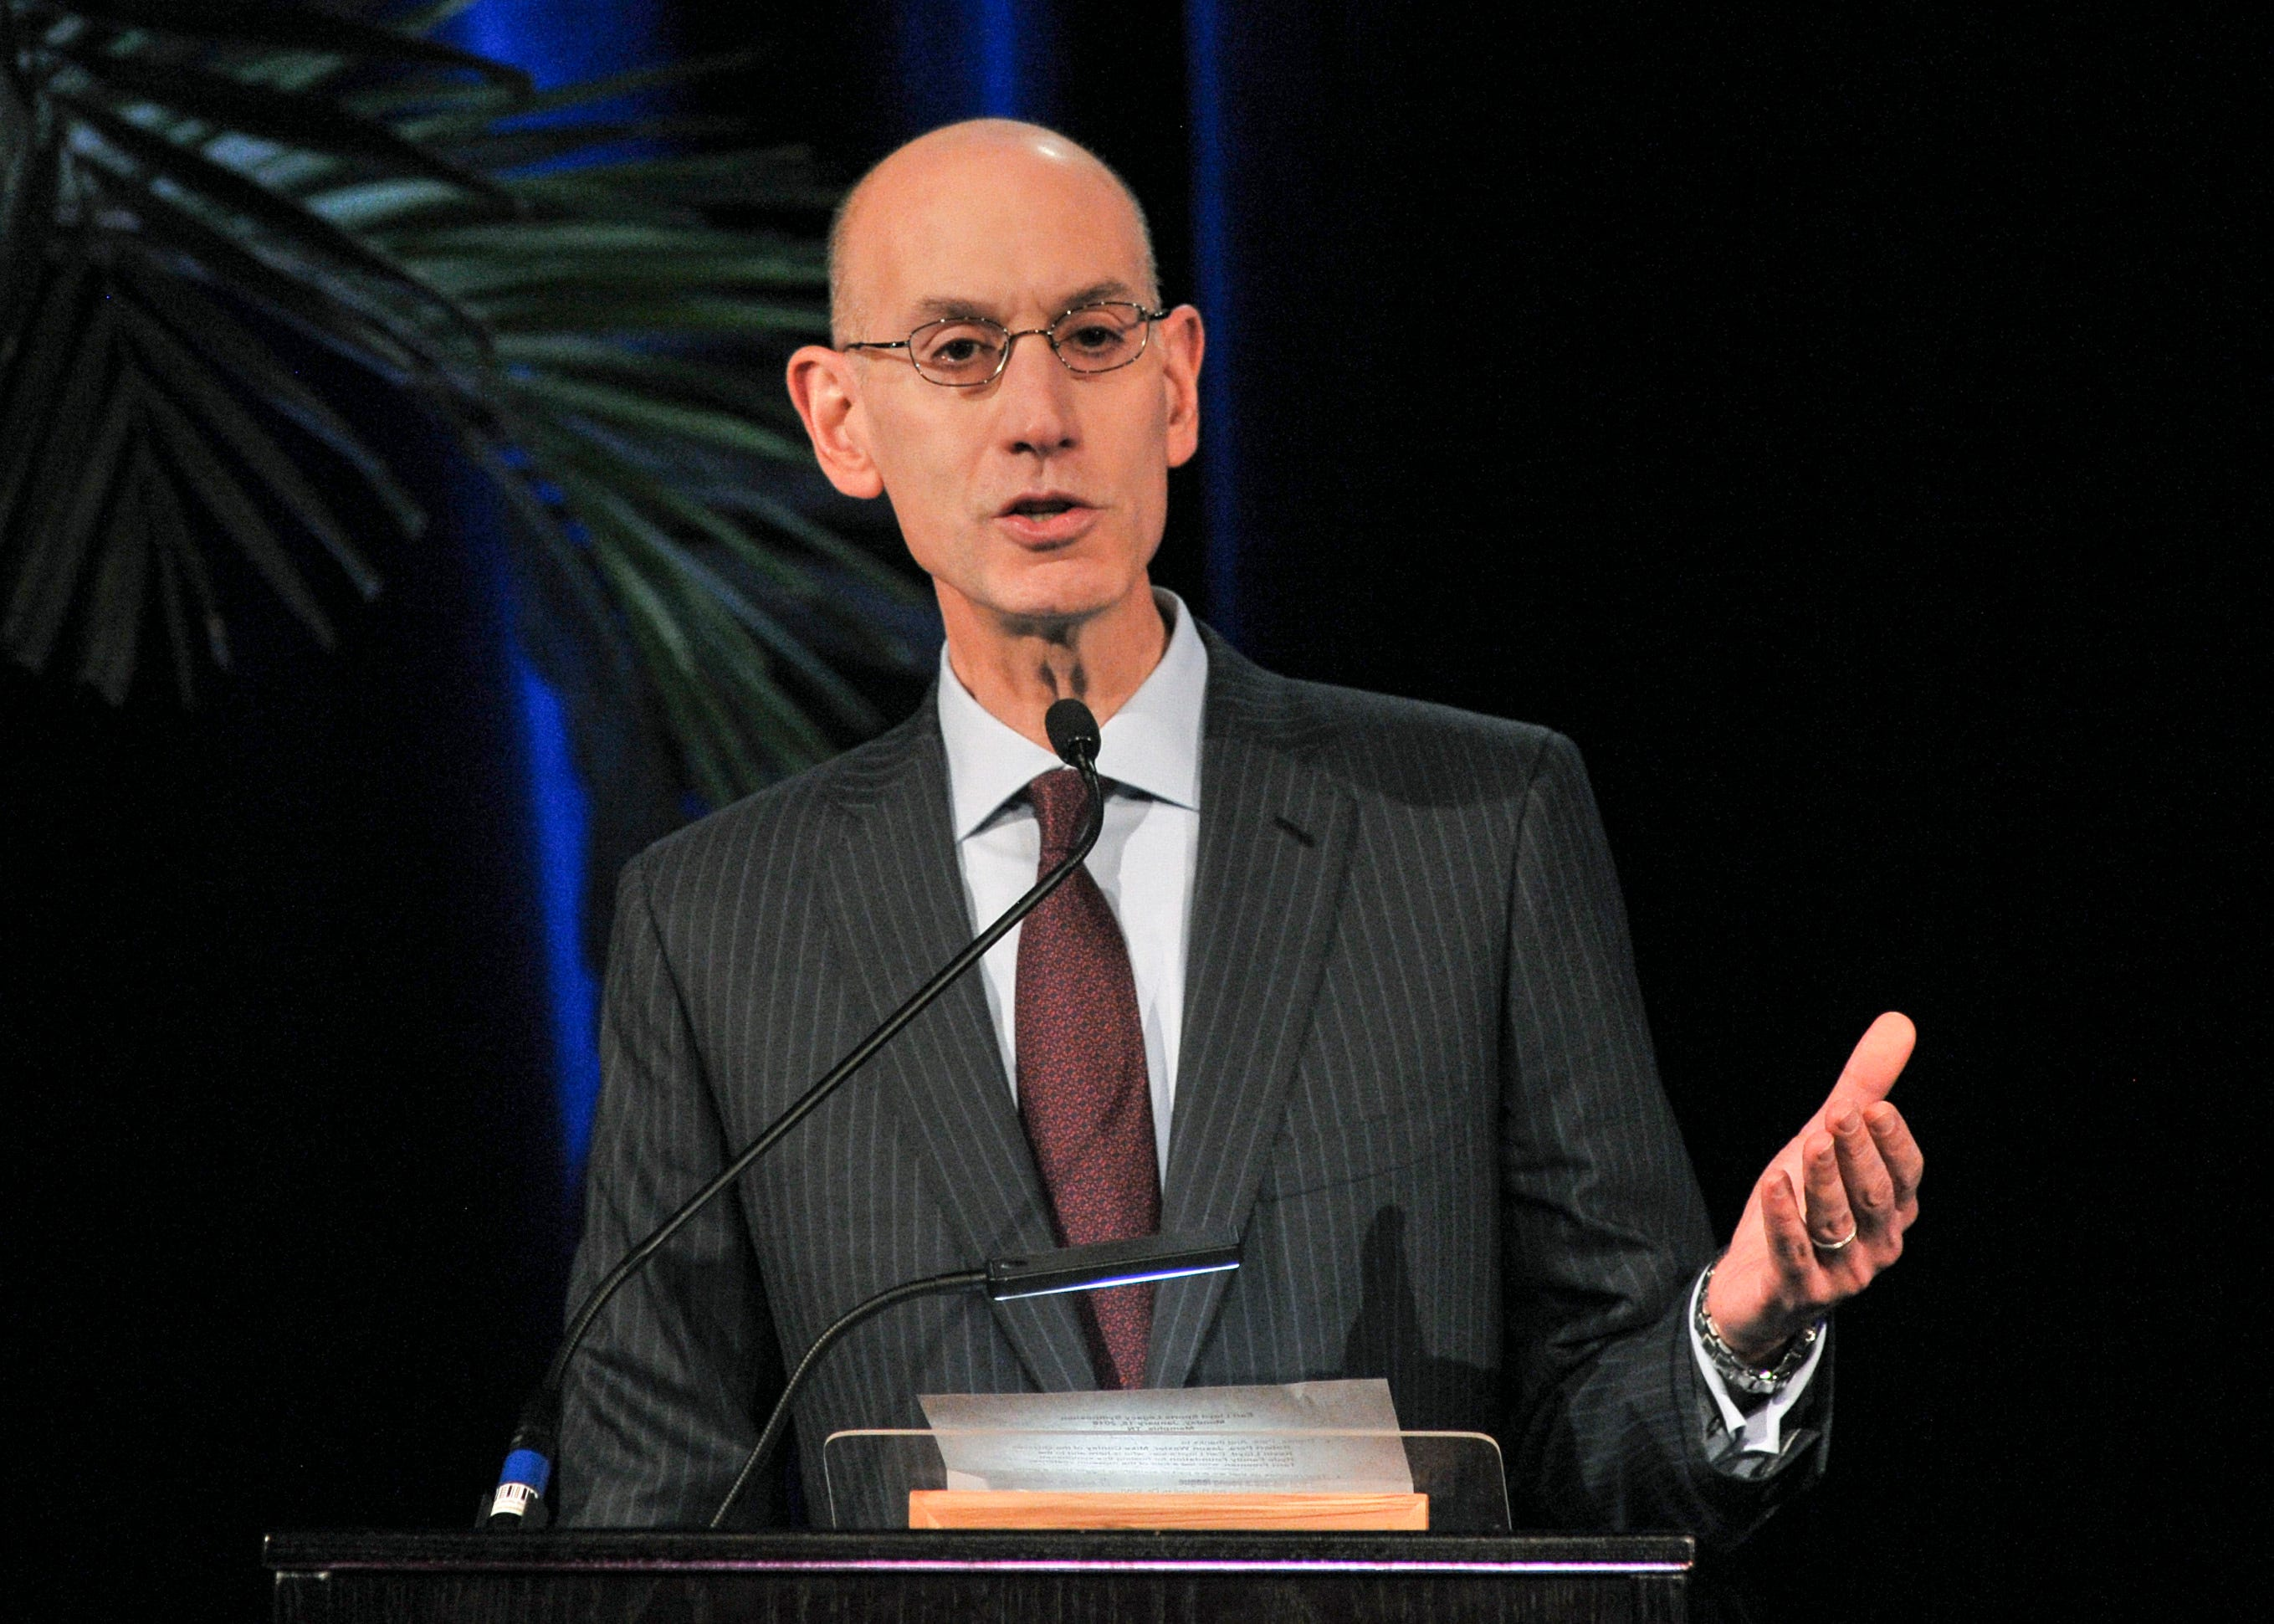 Adam Silver after NBA All-Star success: 'Sounds like we're going to have a televised draft'